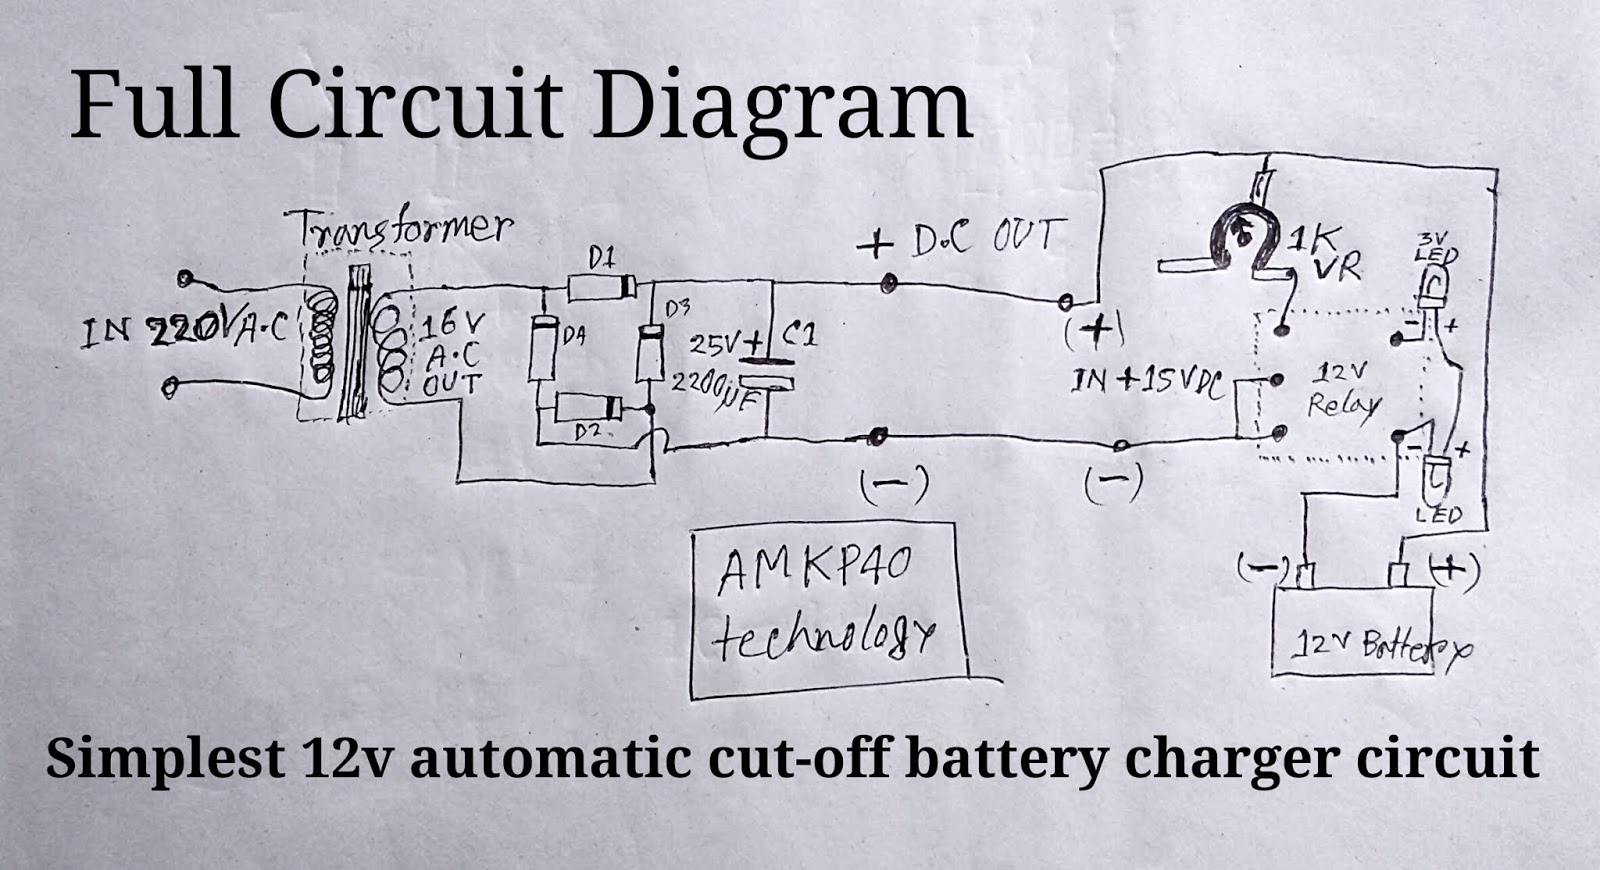 How To Make 12 Volt Automatic Cut Off Battery Charger Circuit Diagram